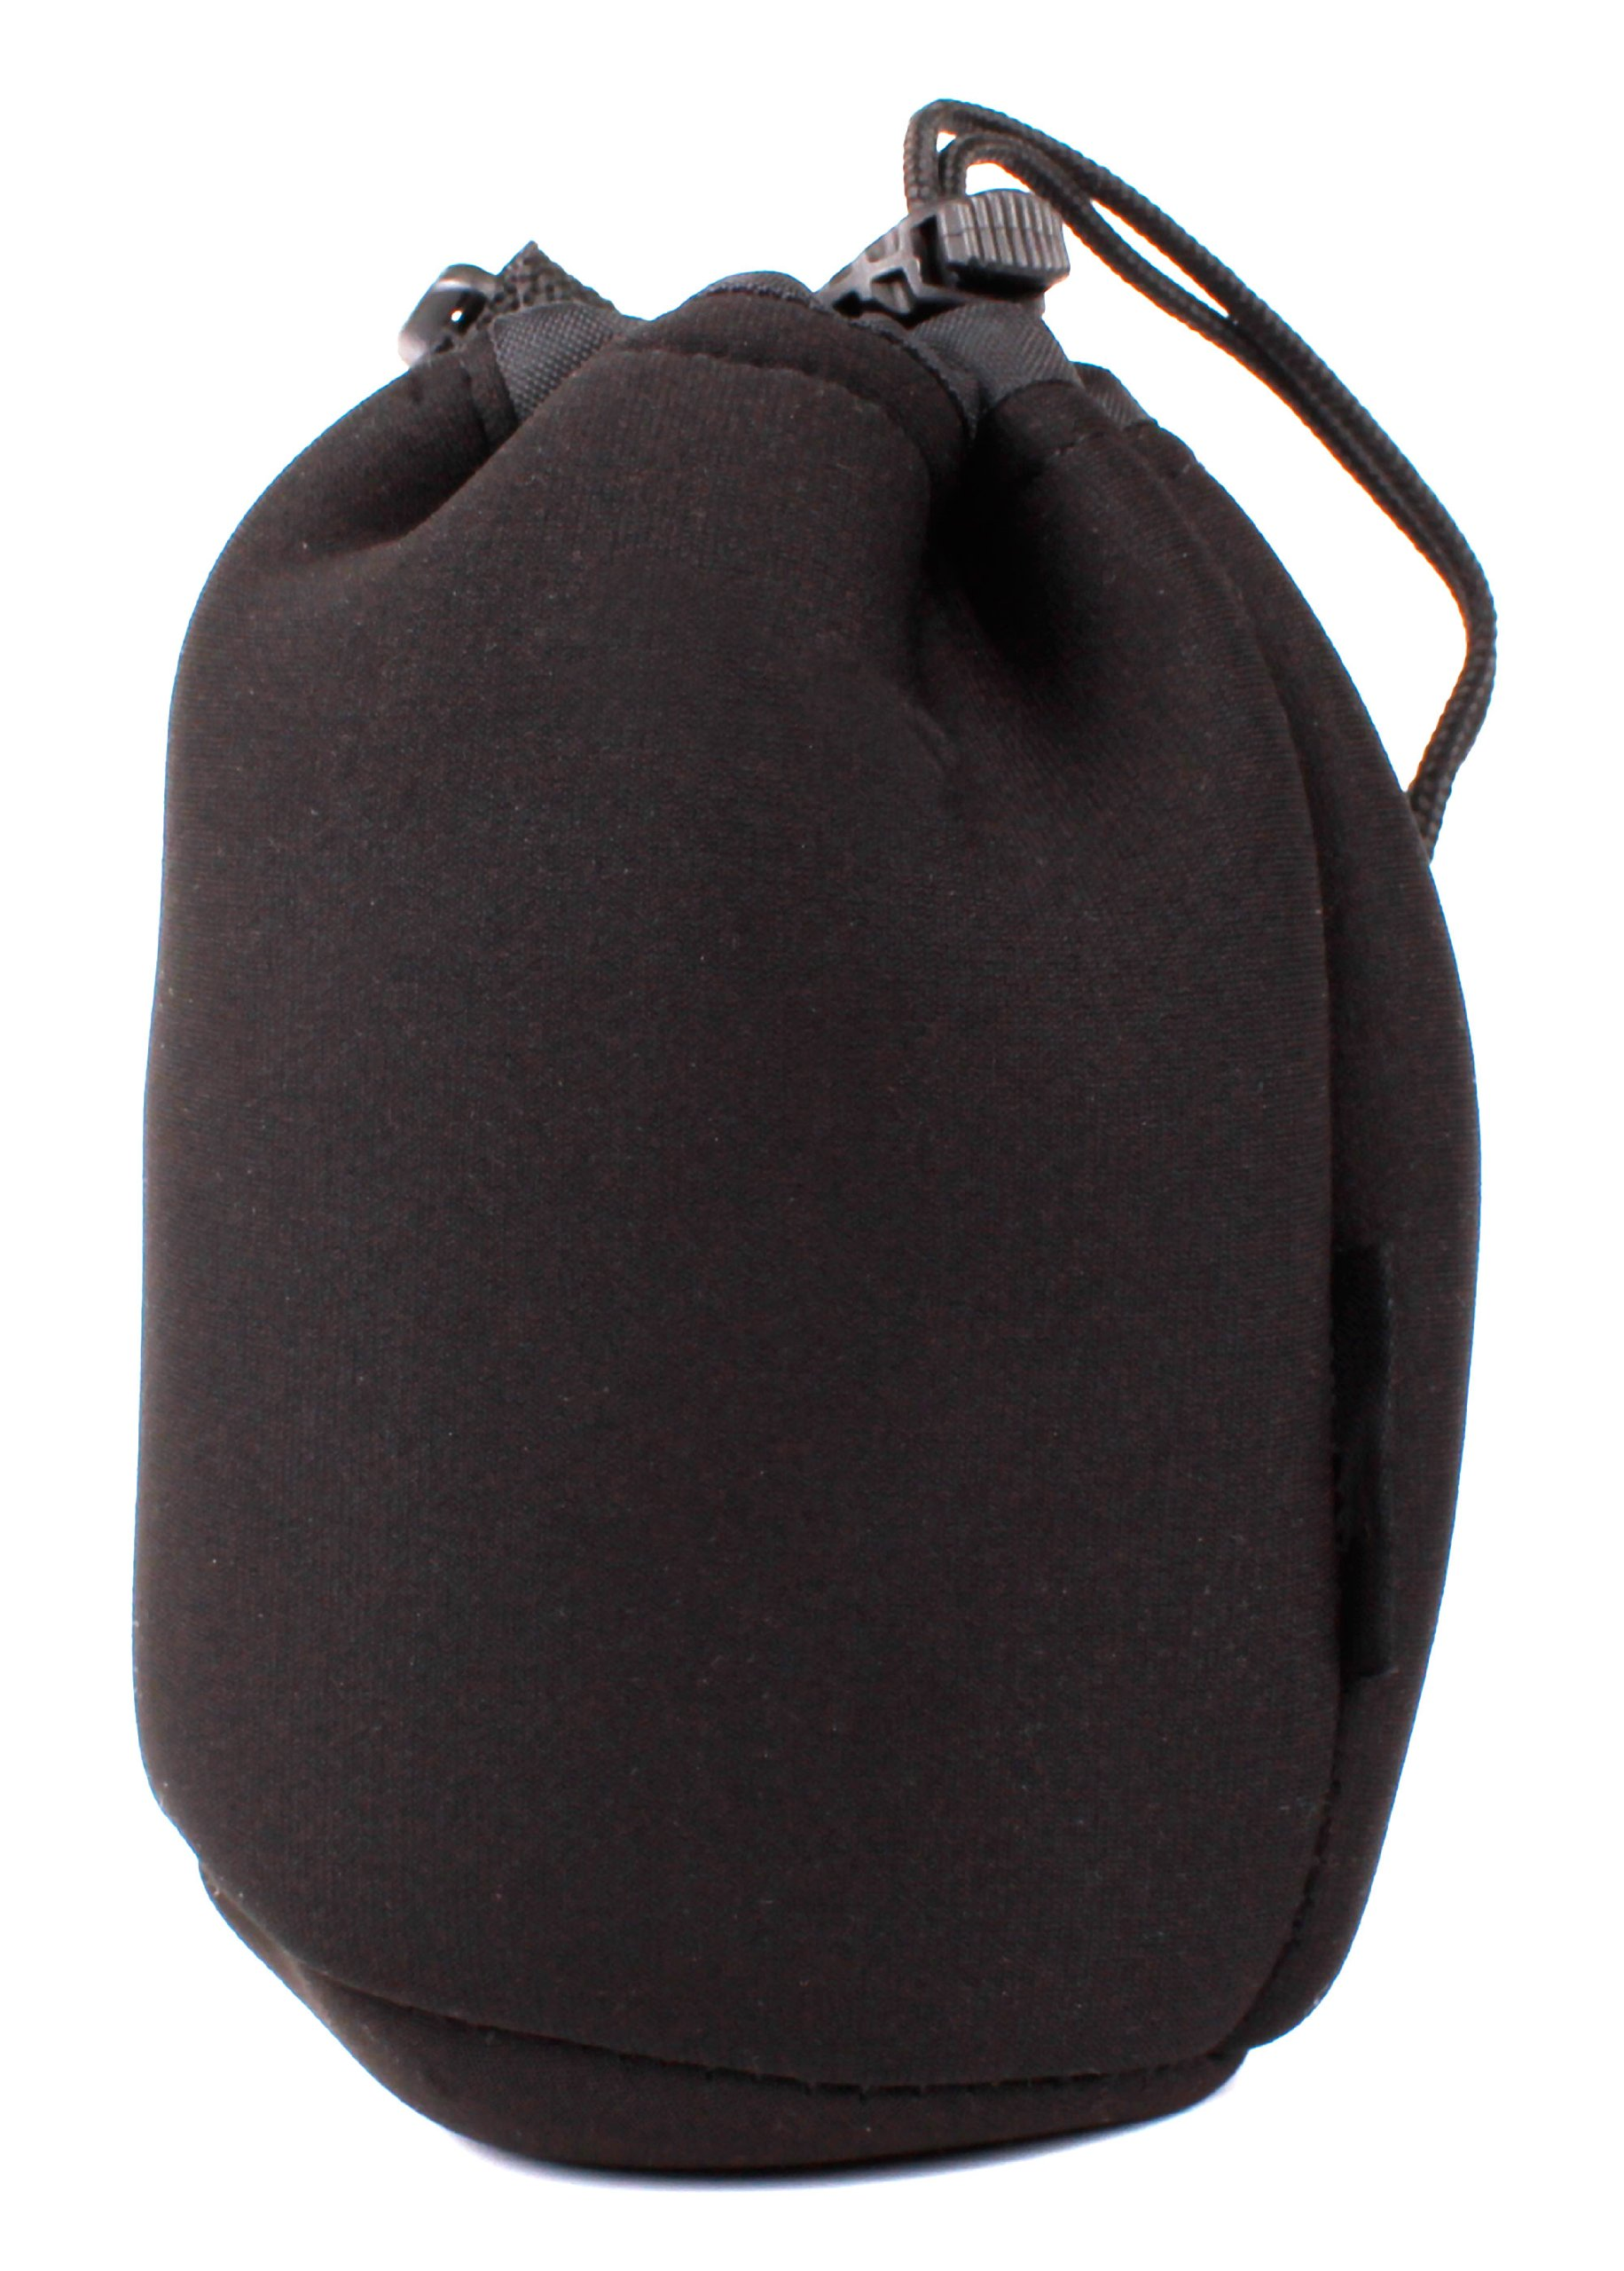 DURAGADGET Jet Black Super-Soft Nylon Pouch Case in Size Medium for the Sony E 55-210mm F4.5-6.3 Lens for Sony E-Mount Cameras by DURAGADGET